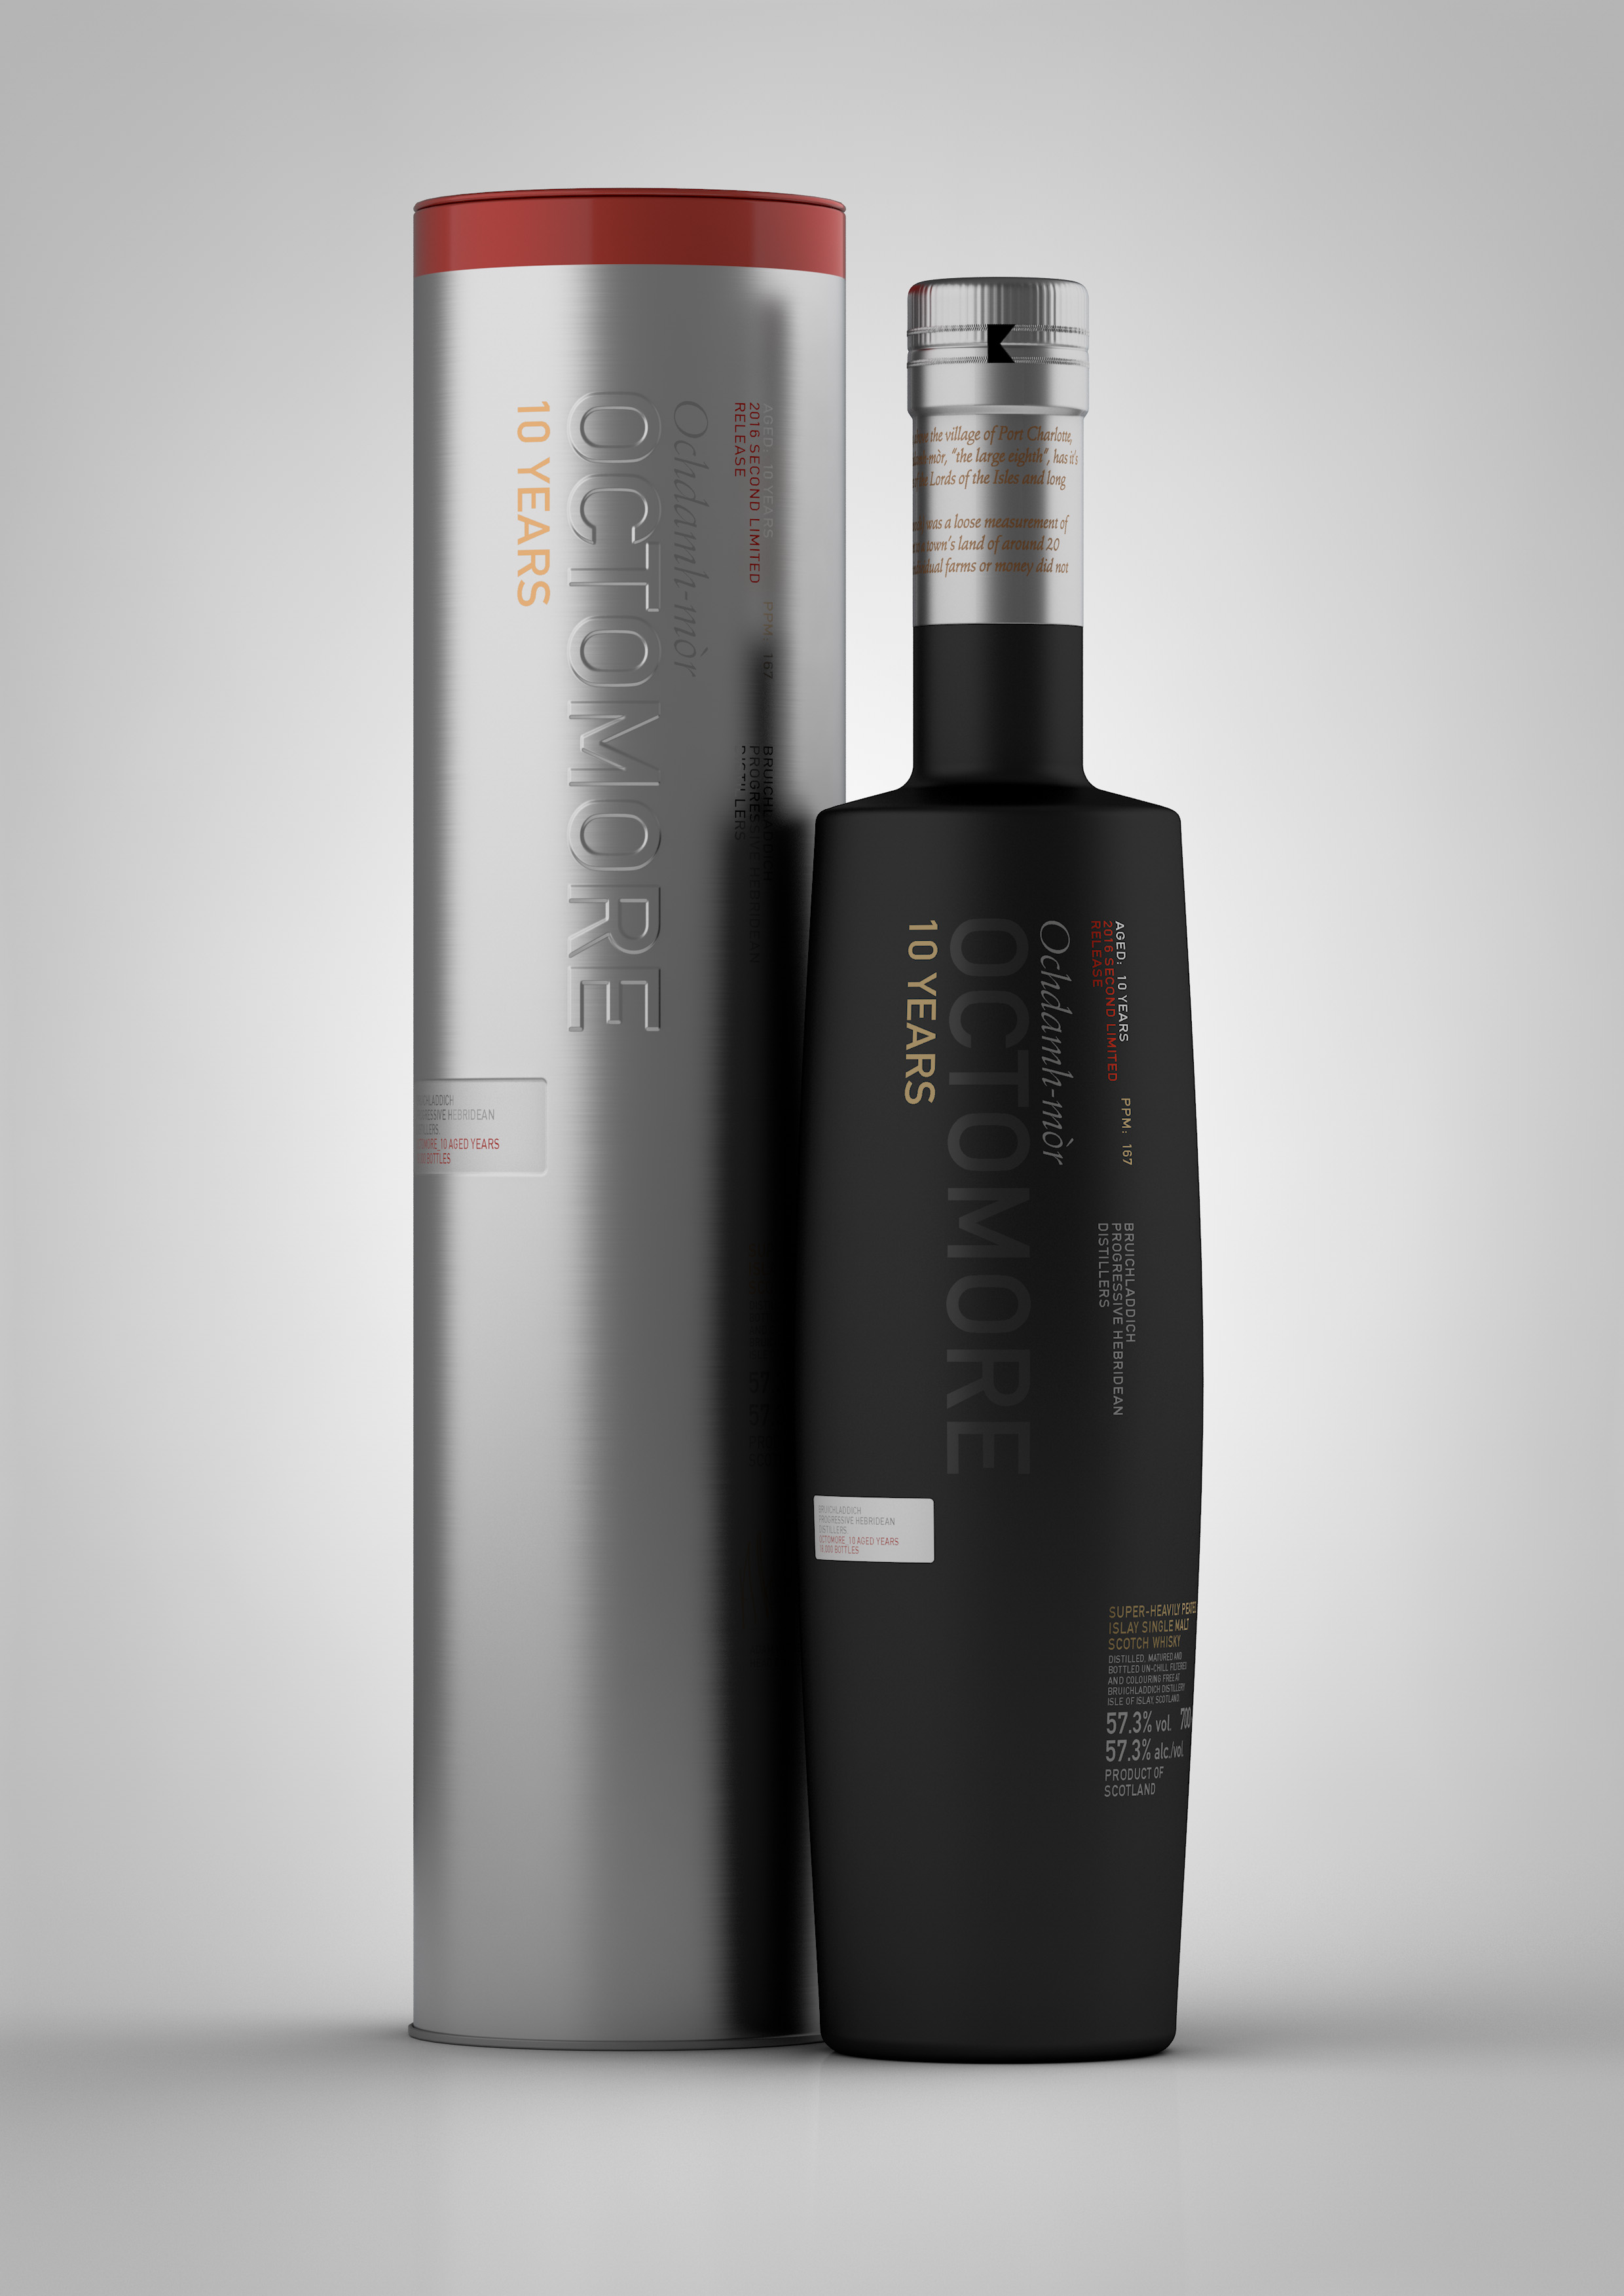 OCTOMORE 10 – Second limited Edition